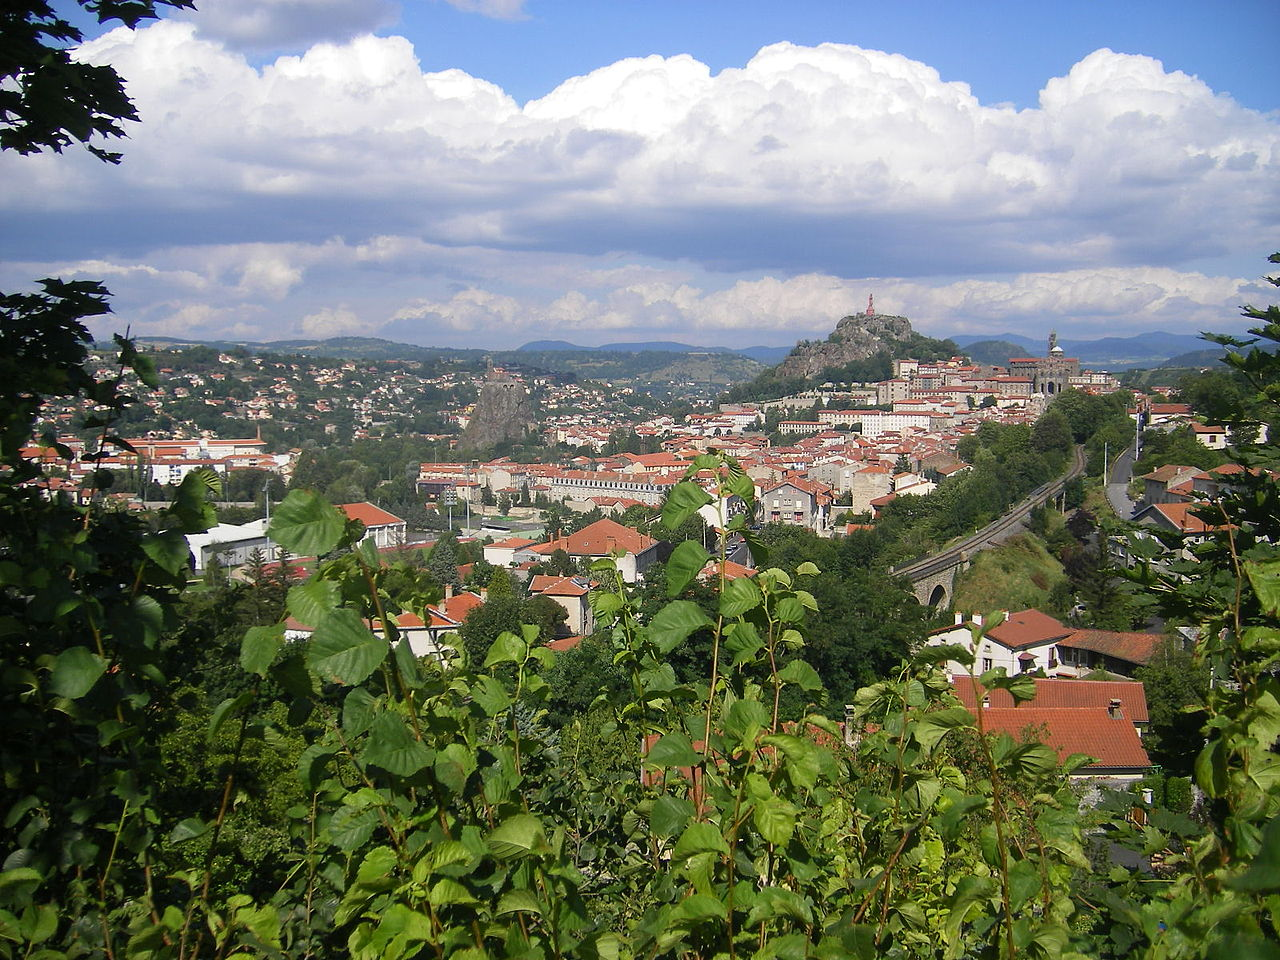 Le Puy en Velay By Szeder László via Wikimedia Commons